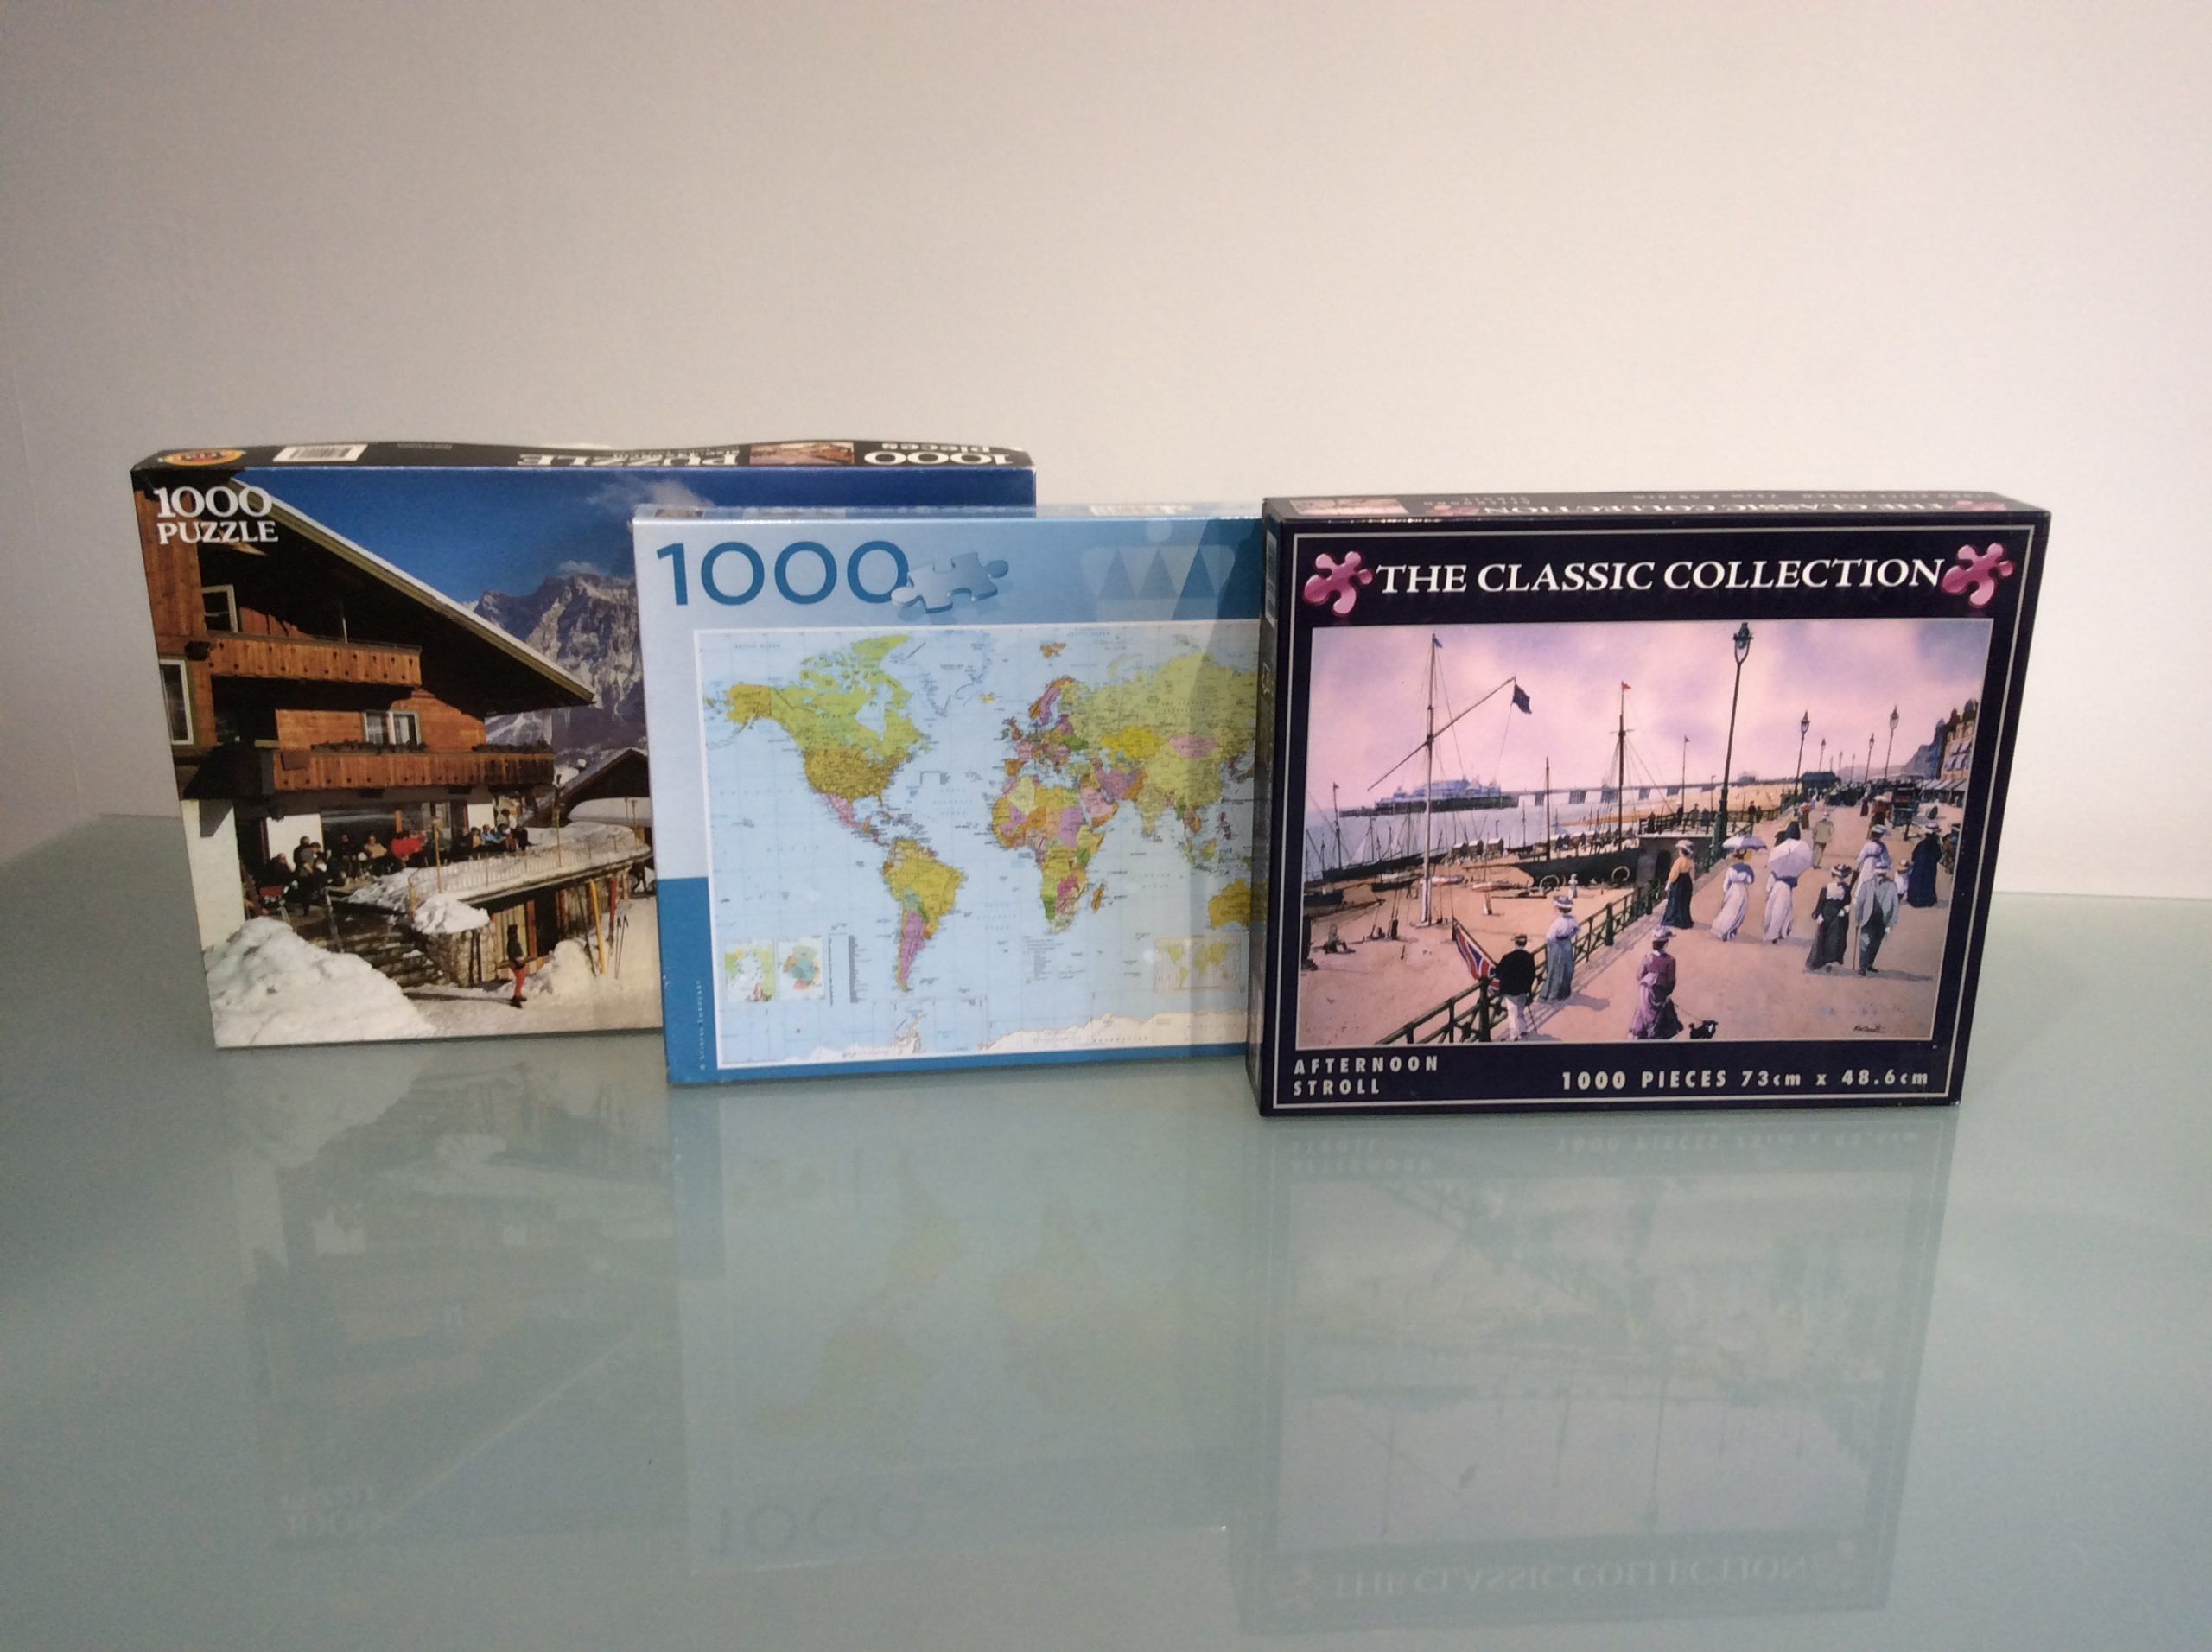 1000 piece jigsaw collection